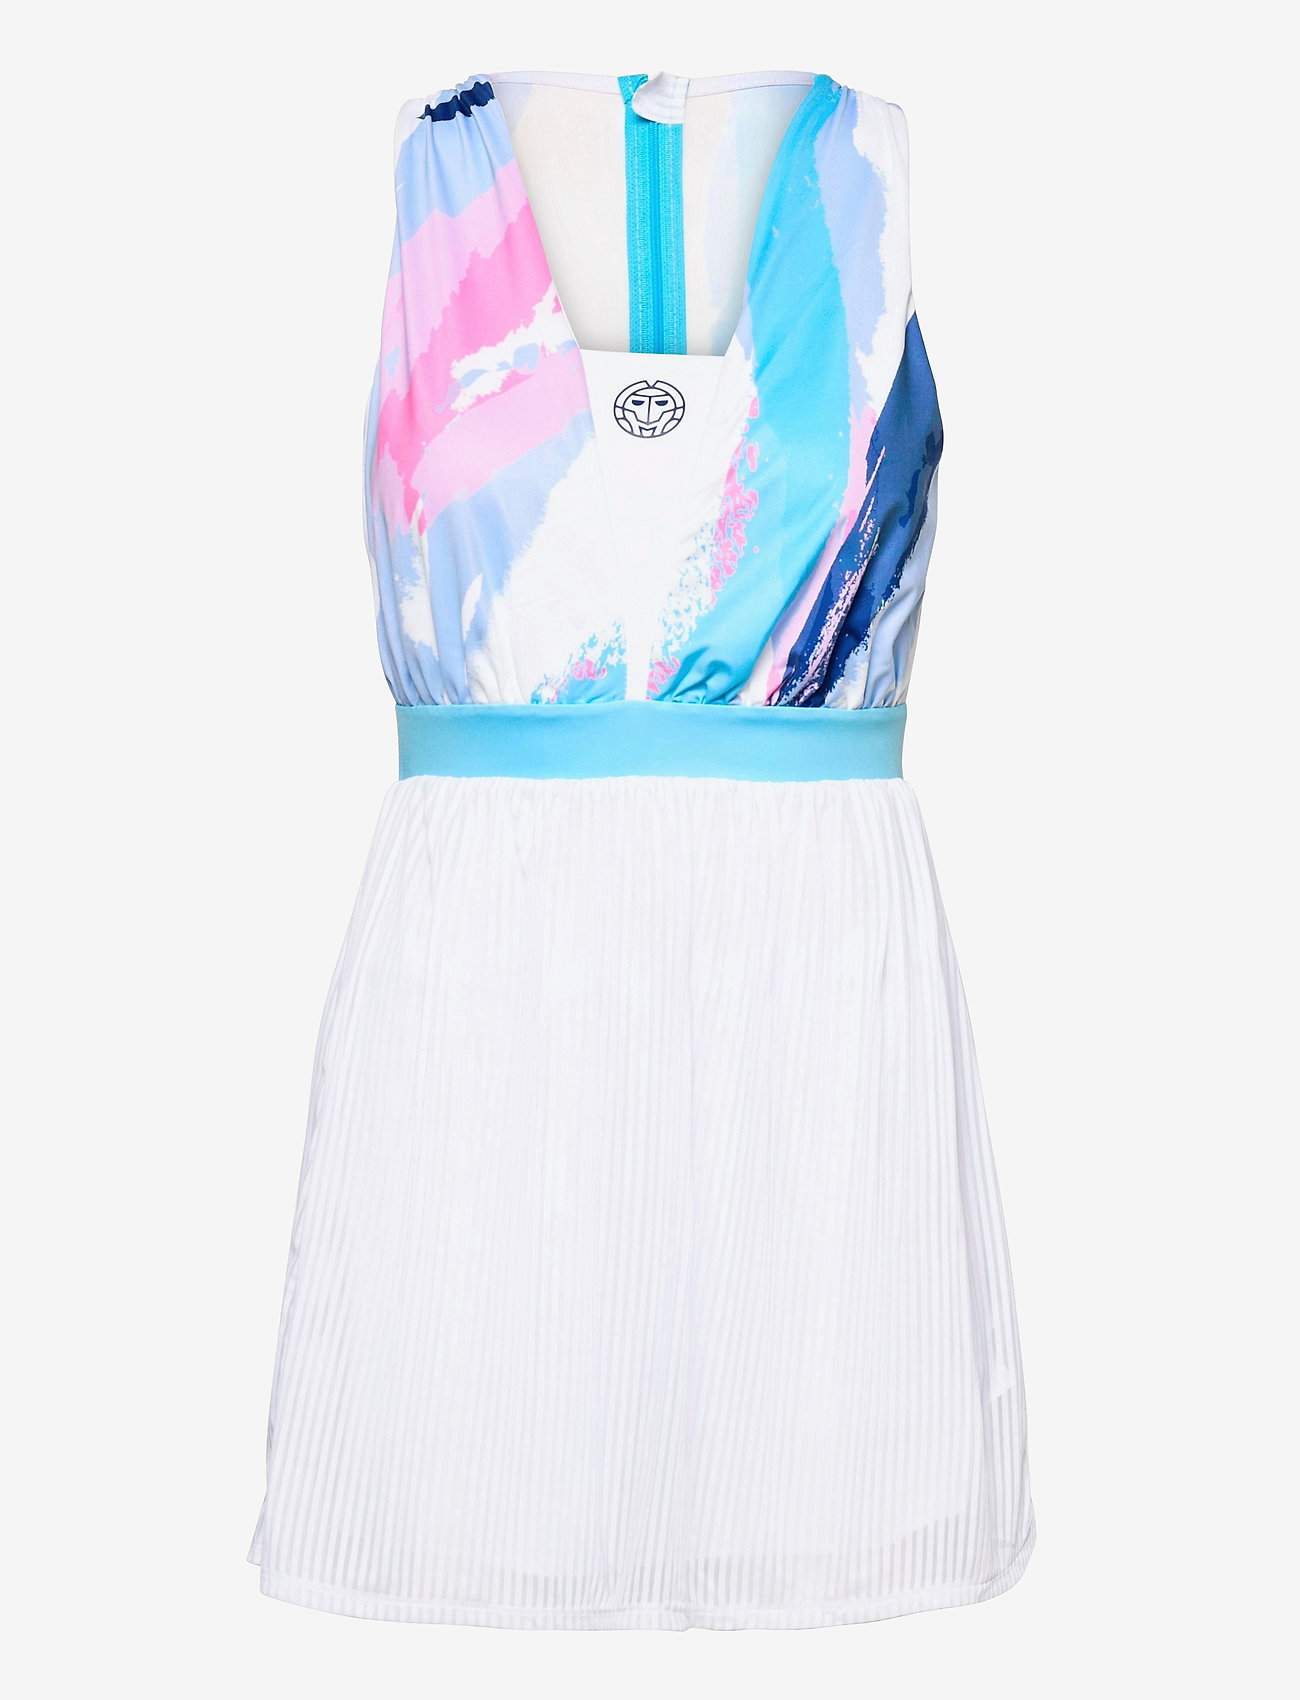 BIDI BADU - Ankea Tech Dress (2 In 1) - zomerjurken - white, aqua - 0